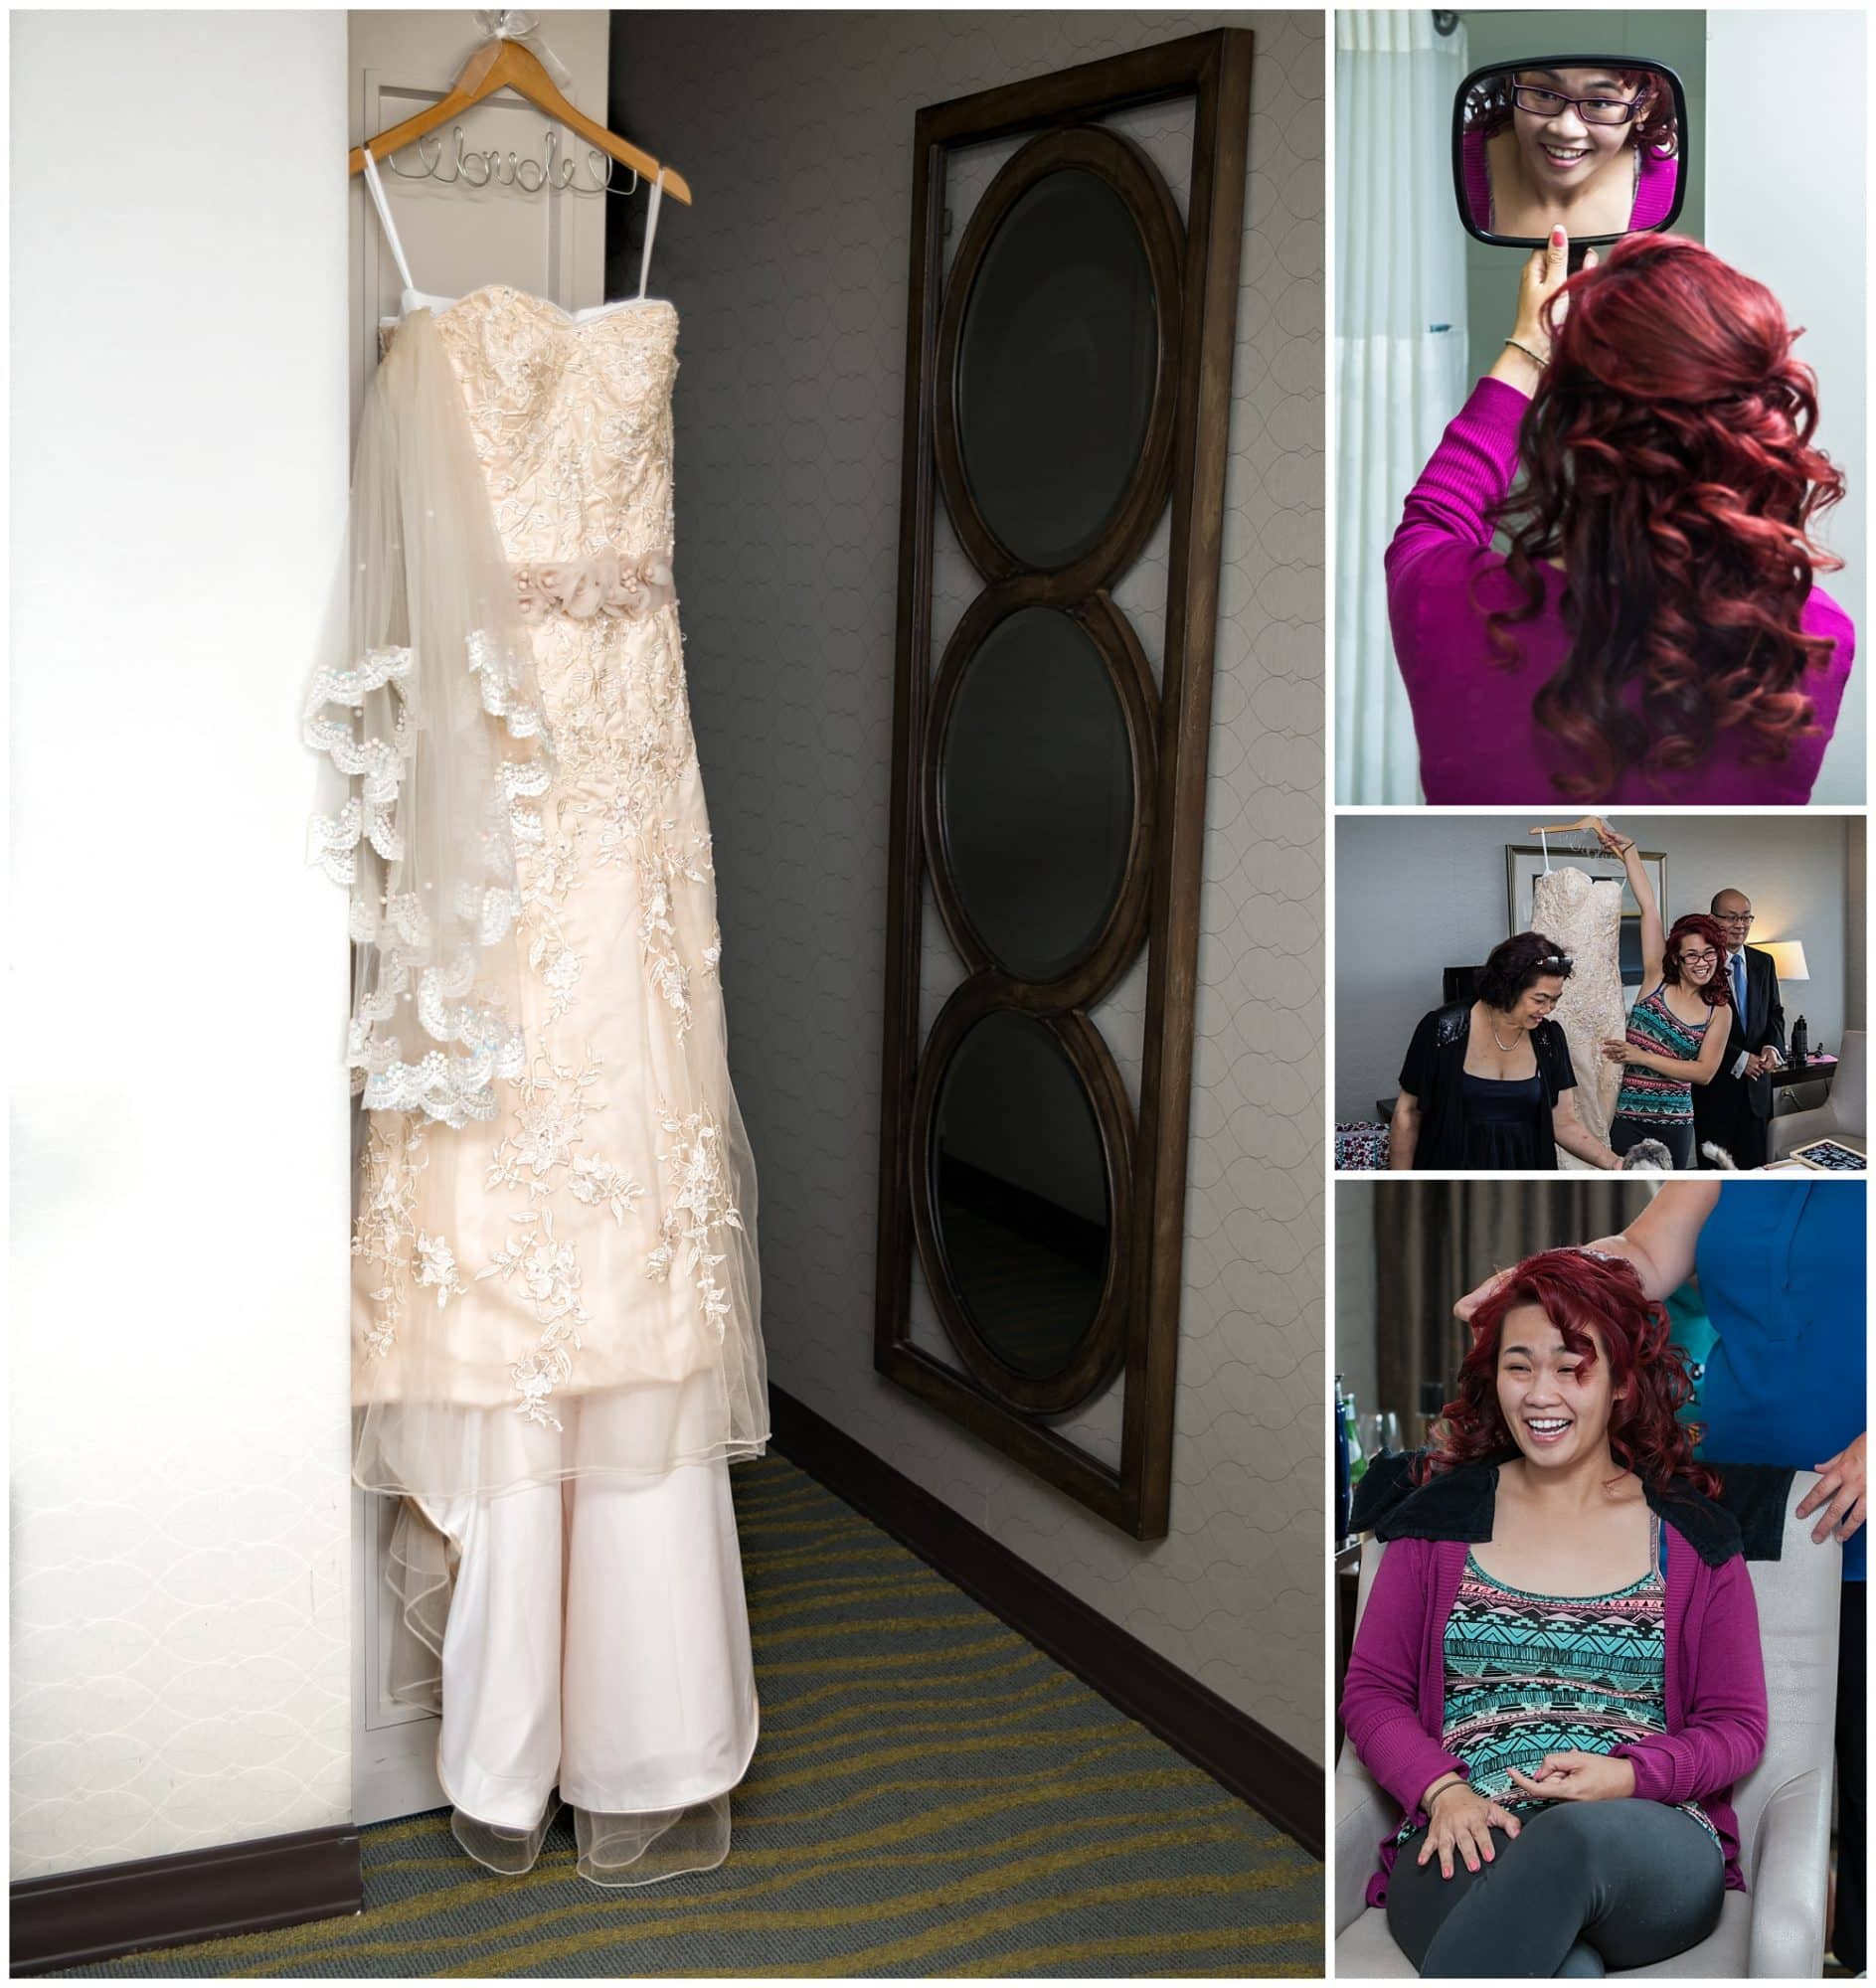 The wedding dress hangs from a door during the bride's bridal prep with her hair at the Atlantica Hotel in Halifax, NS.